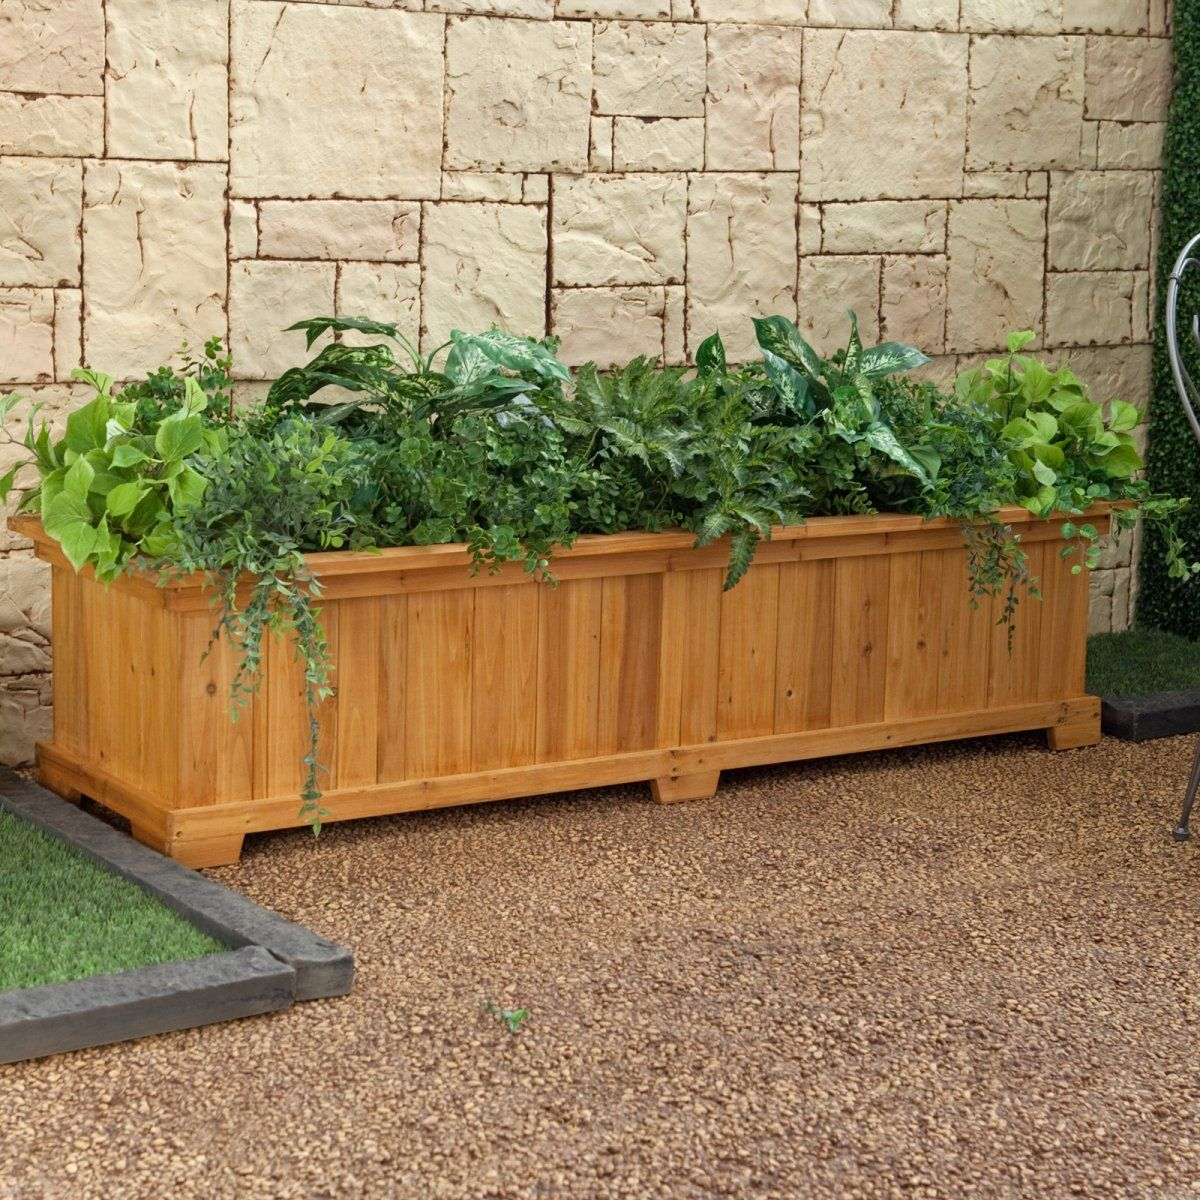 Rectangular Cedar Wood Aster Patio Planter Box   Planter U0026 Window Boxes At  Simply Planters